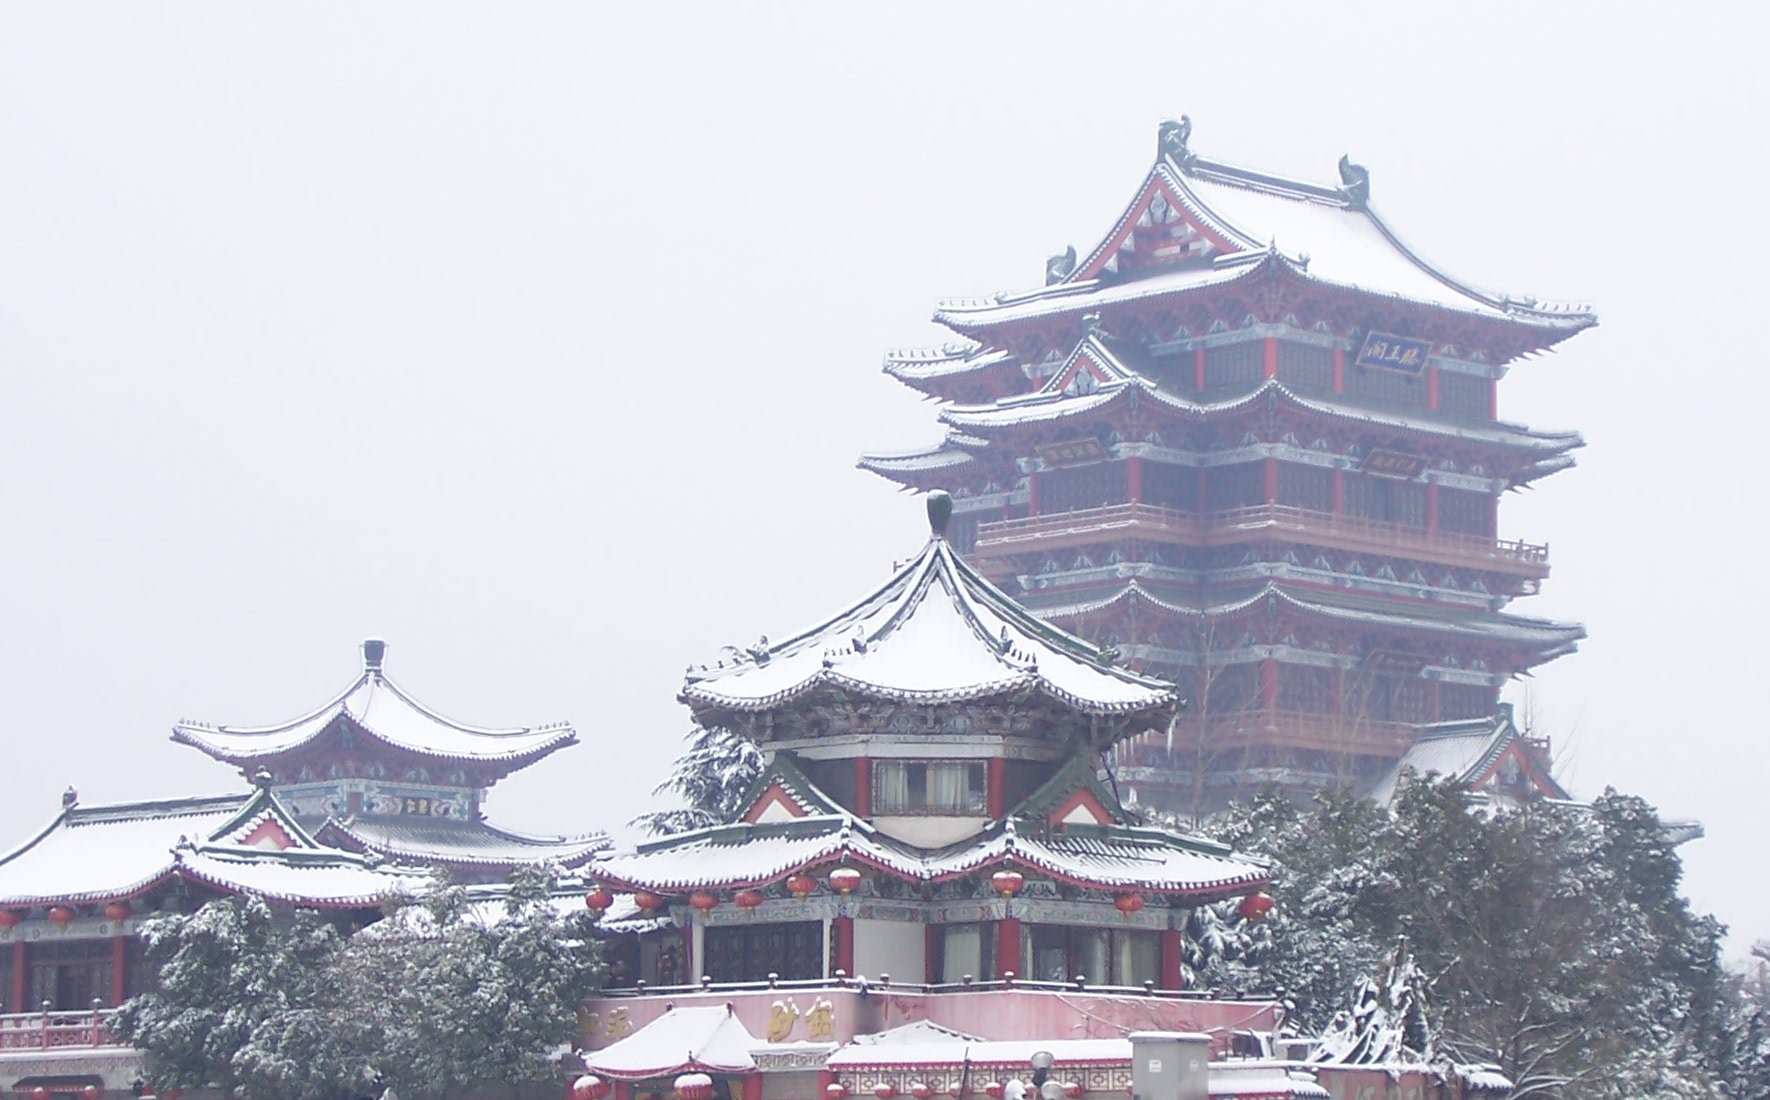 Pavilion_of_Prince_Teng-_Nanchang-_Jiangxi-_China-_in_the_snow_-_20080202.jpg